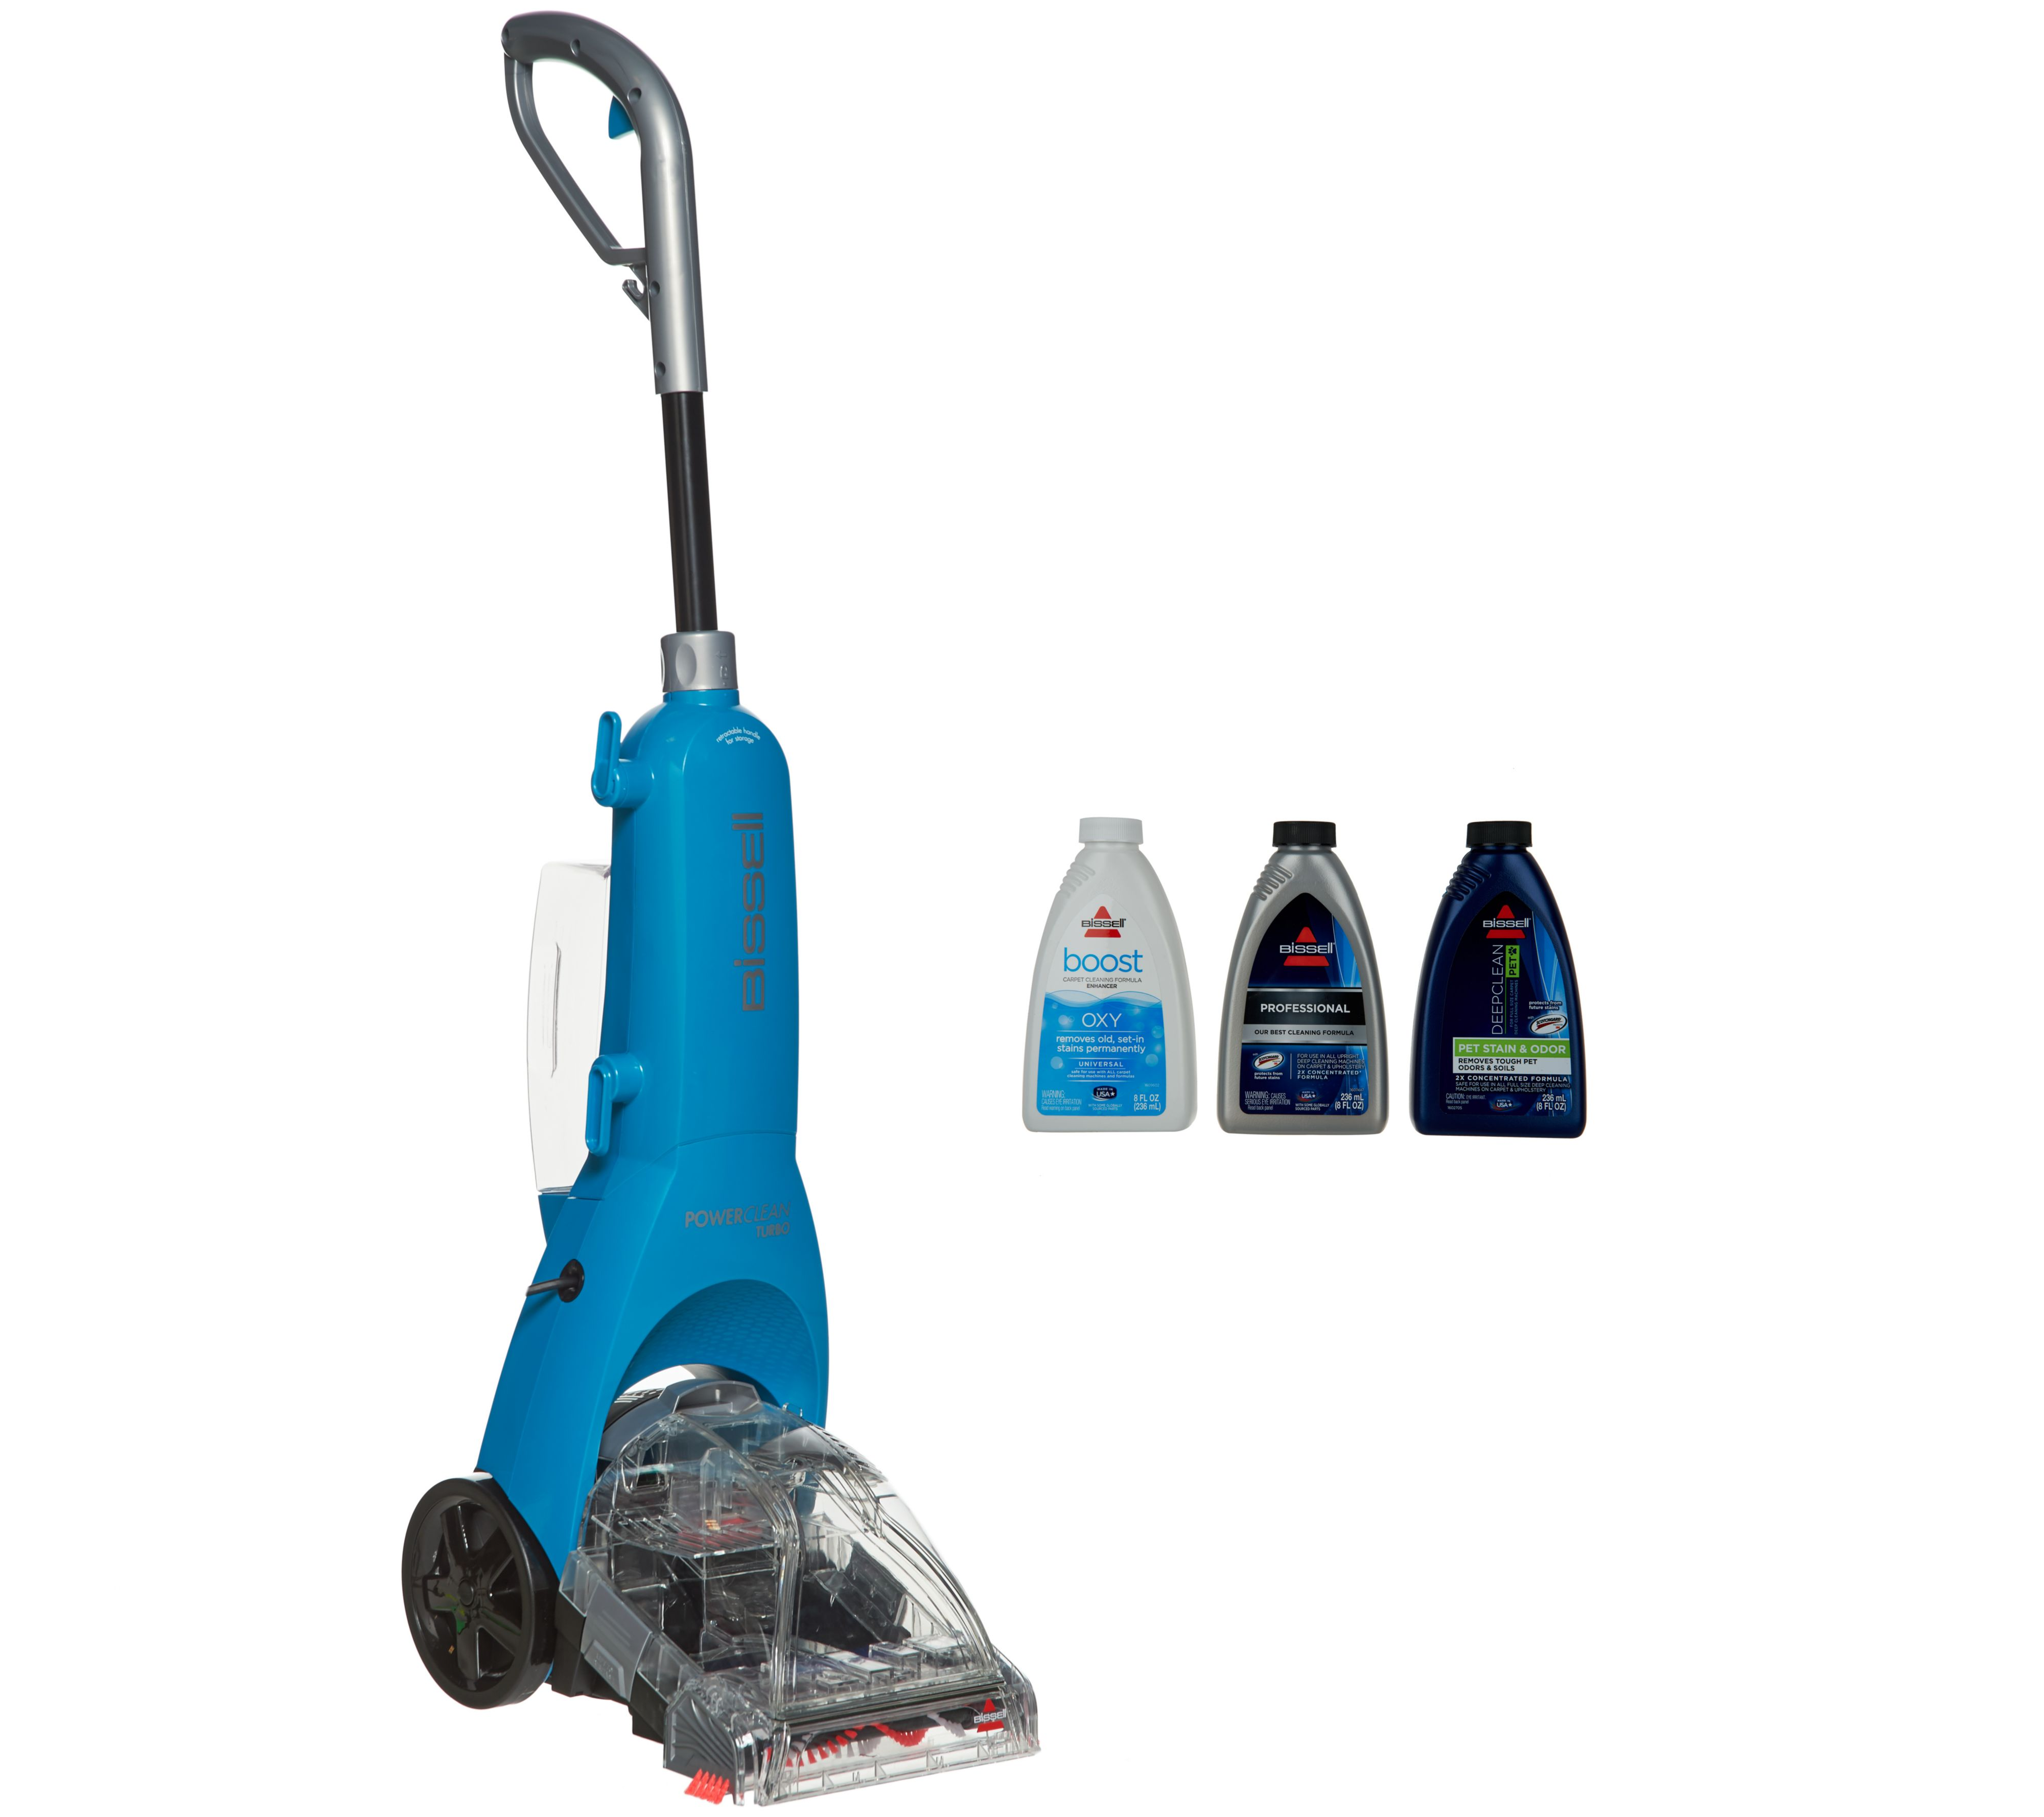 Bissell PowerClean Turbo Deep Clean Carpet & Rug Cleaner - Page 1 — QVC.com